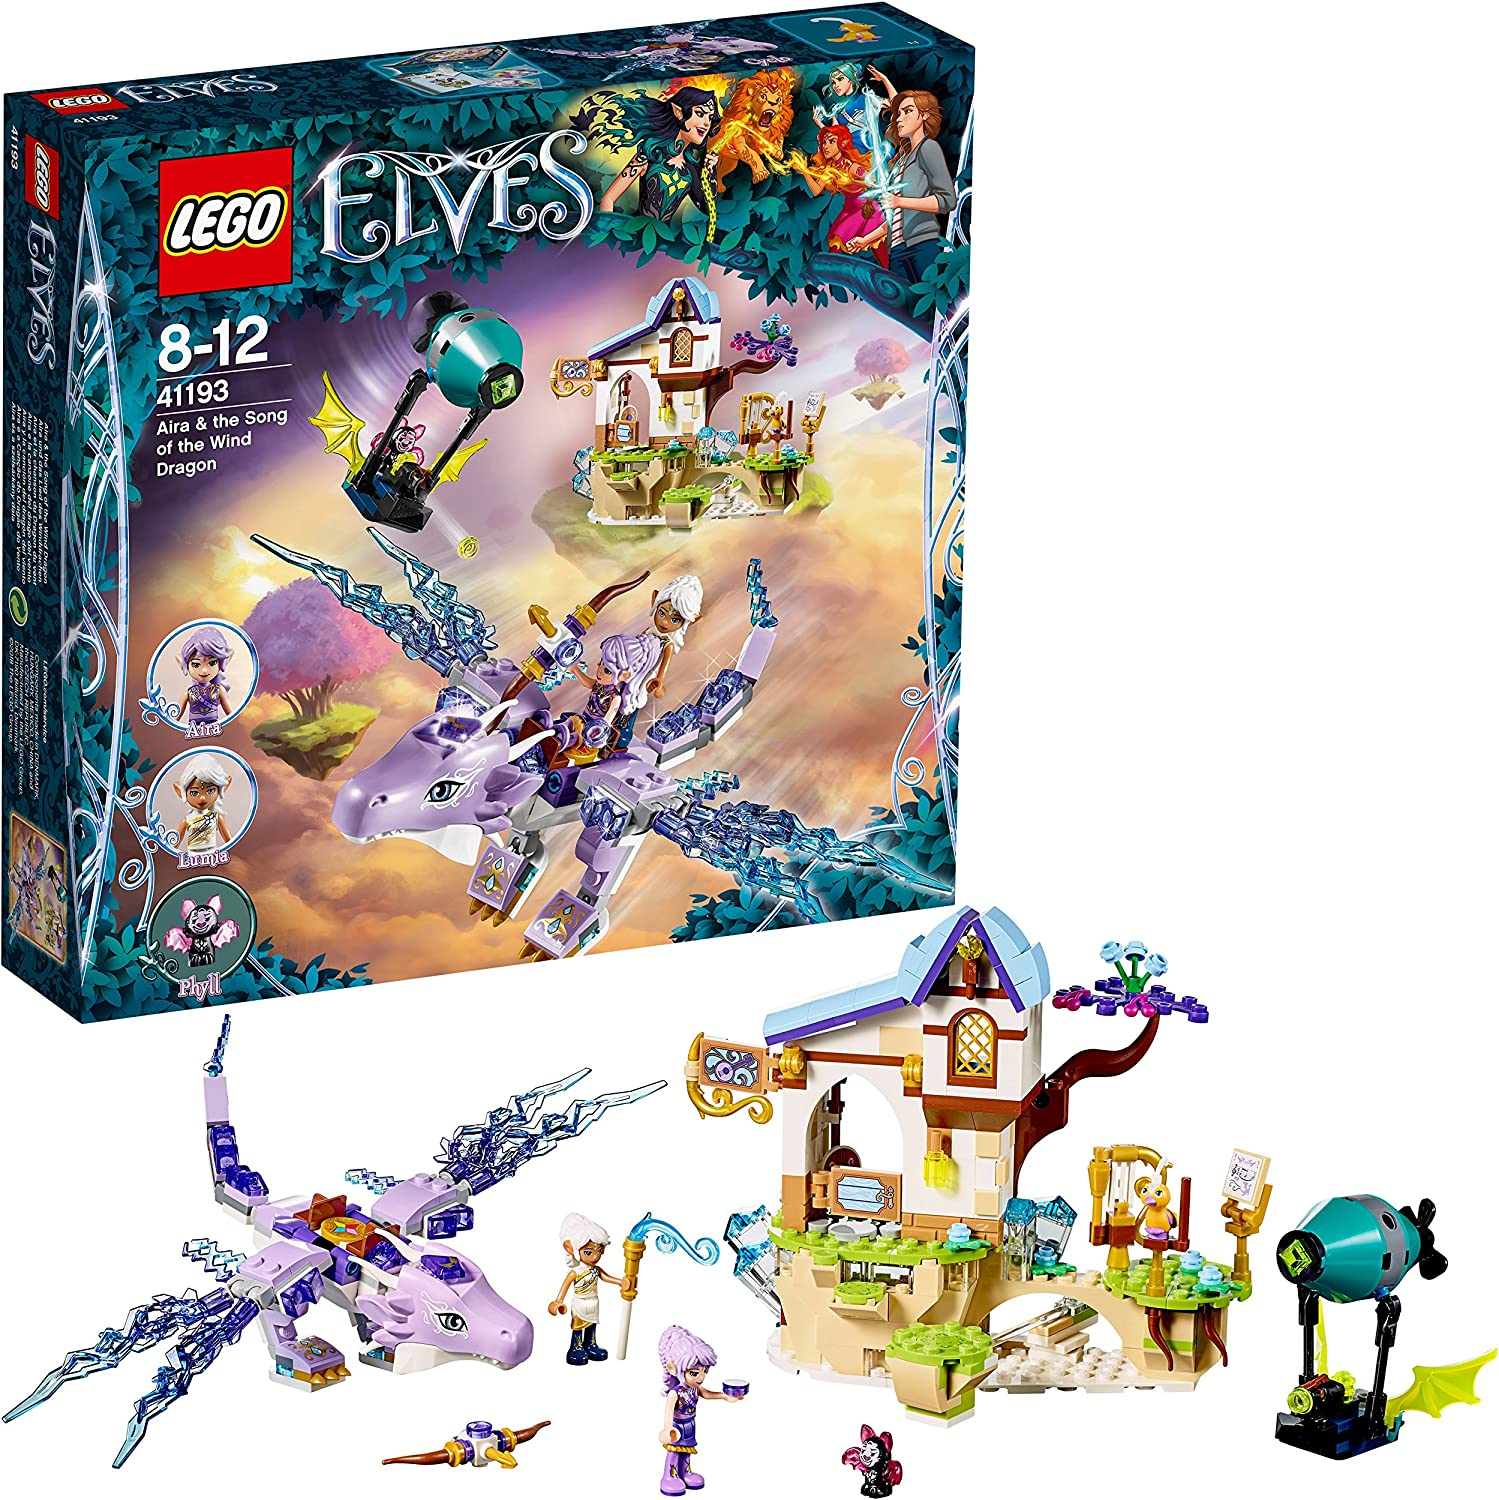 Lego Elves 41193 Aira and The Song of The Wind Kite